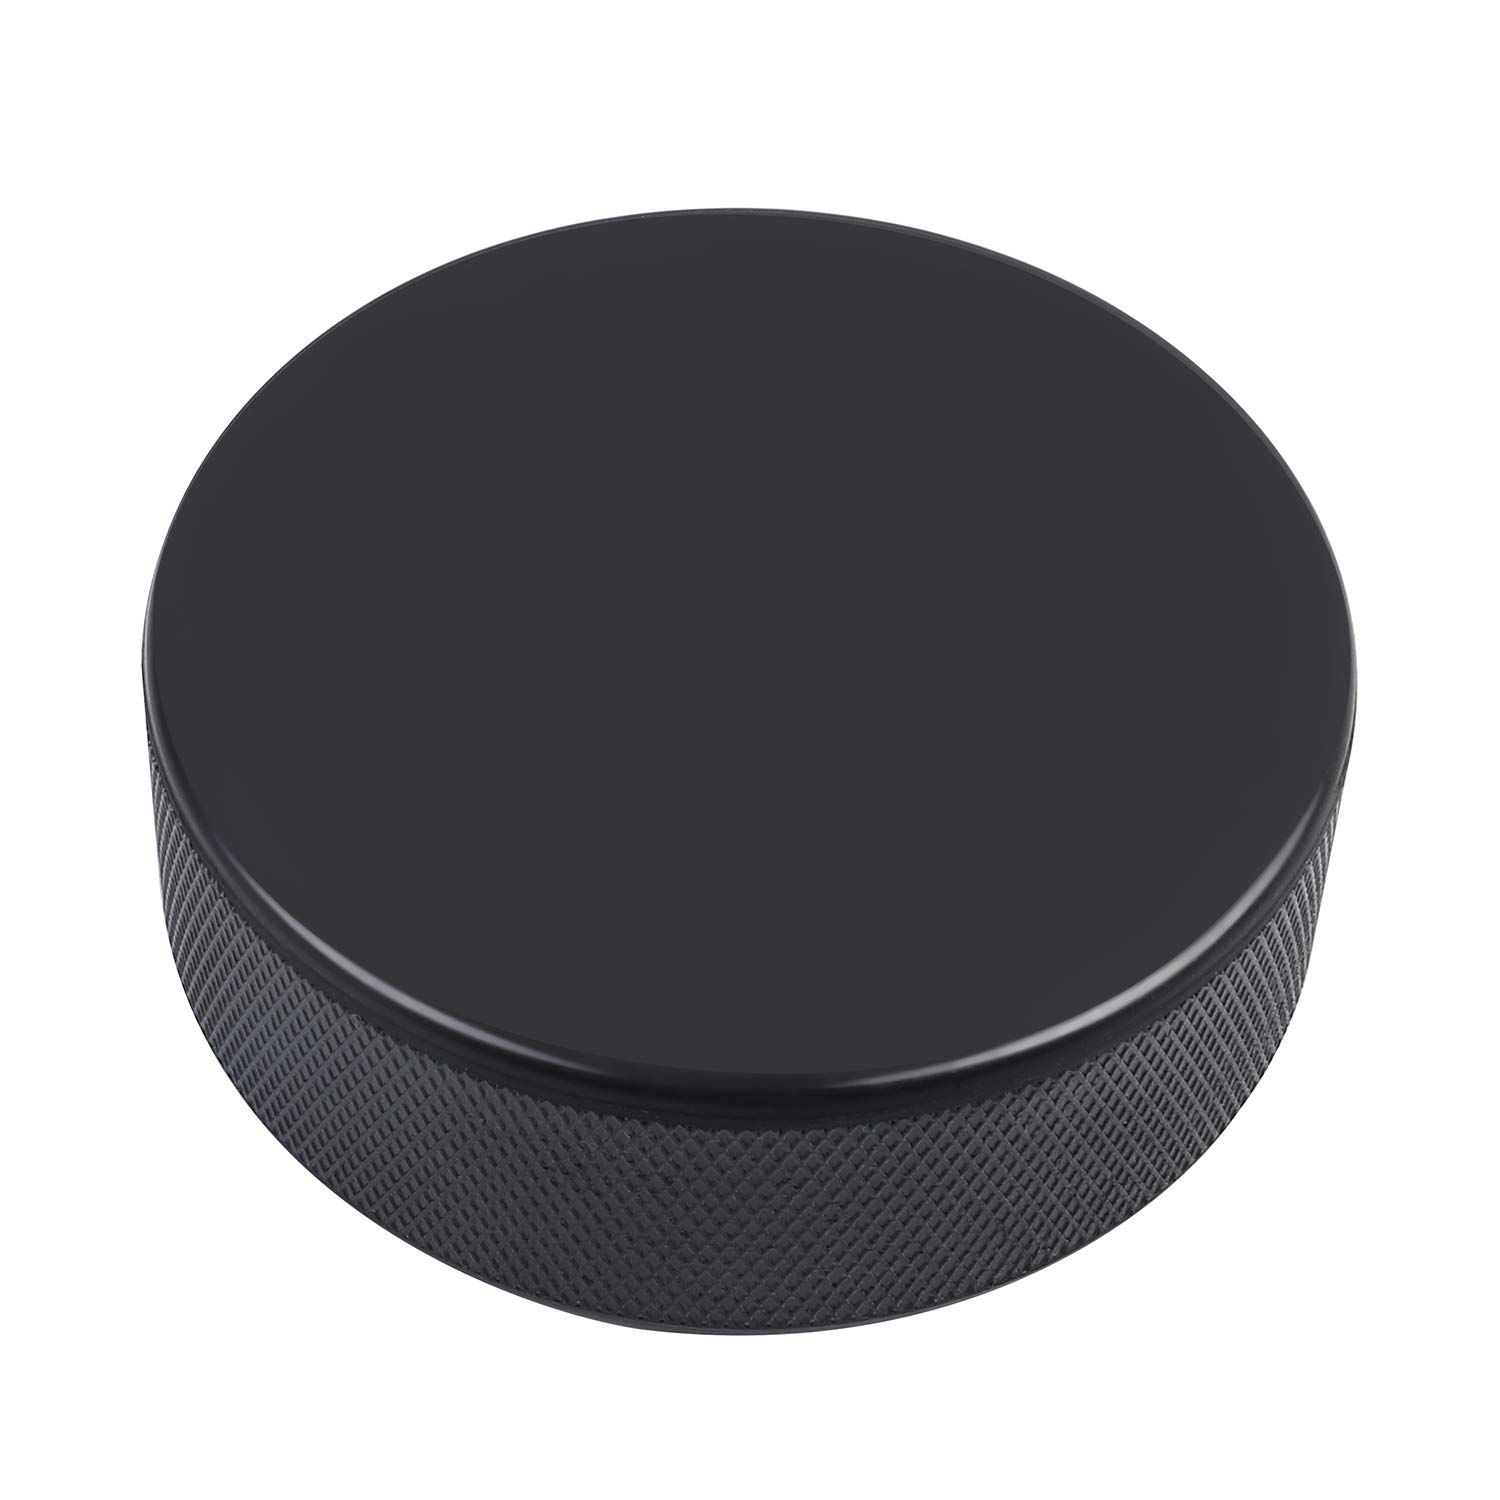 3pcs for Practicing and Classic Training Golden Sport Ice Hockey Pucks Diameter 3 6oz Official Regulation Black Thickness 1